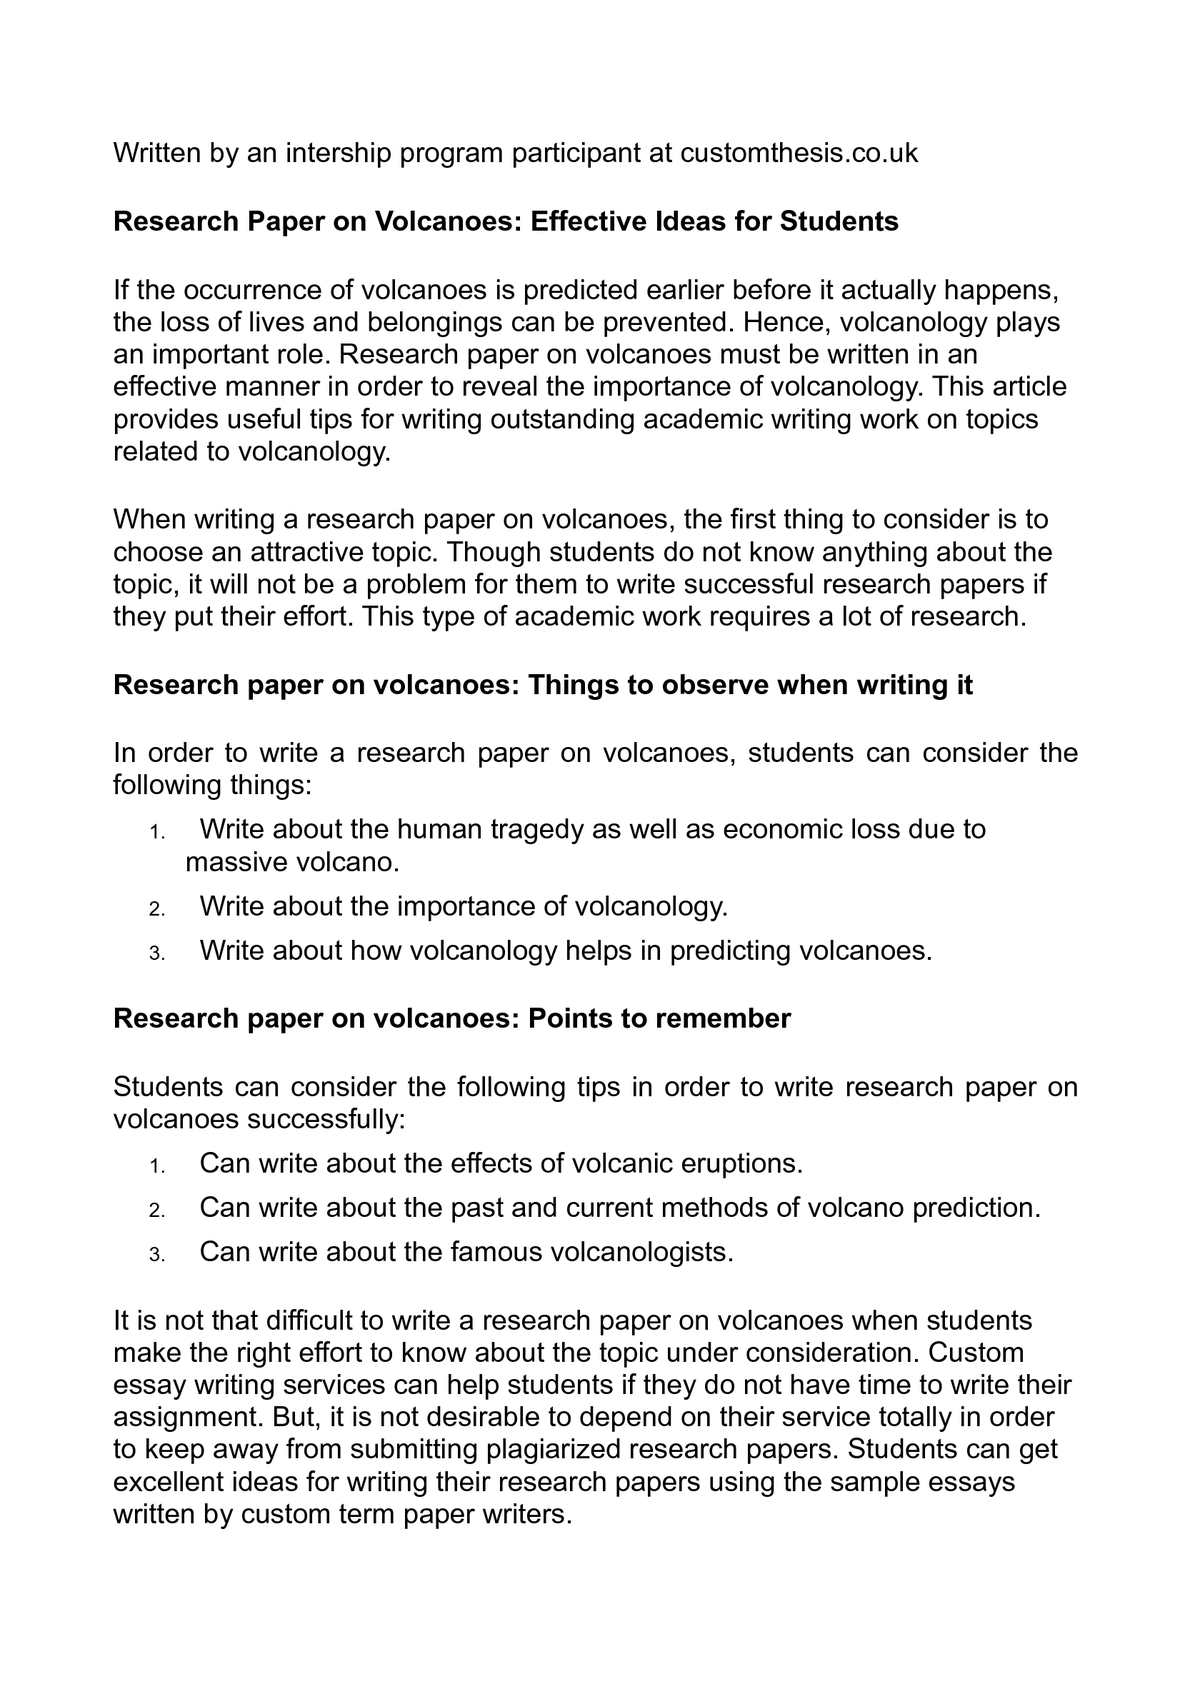 calam eacute o research paper on volcanoes effective ideas for students